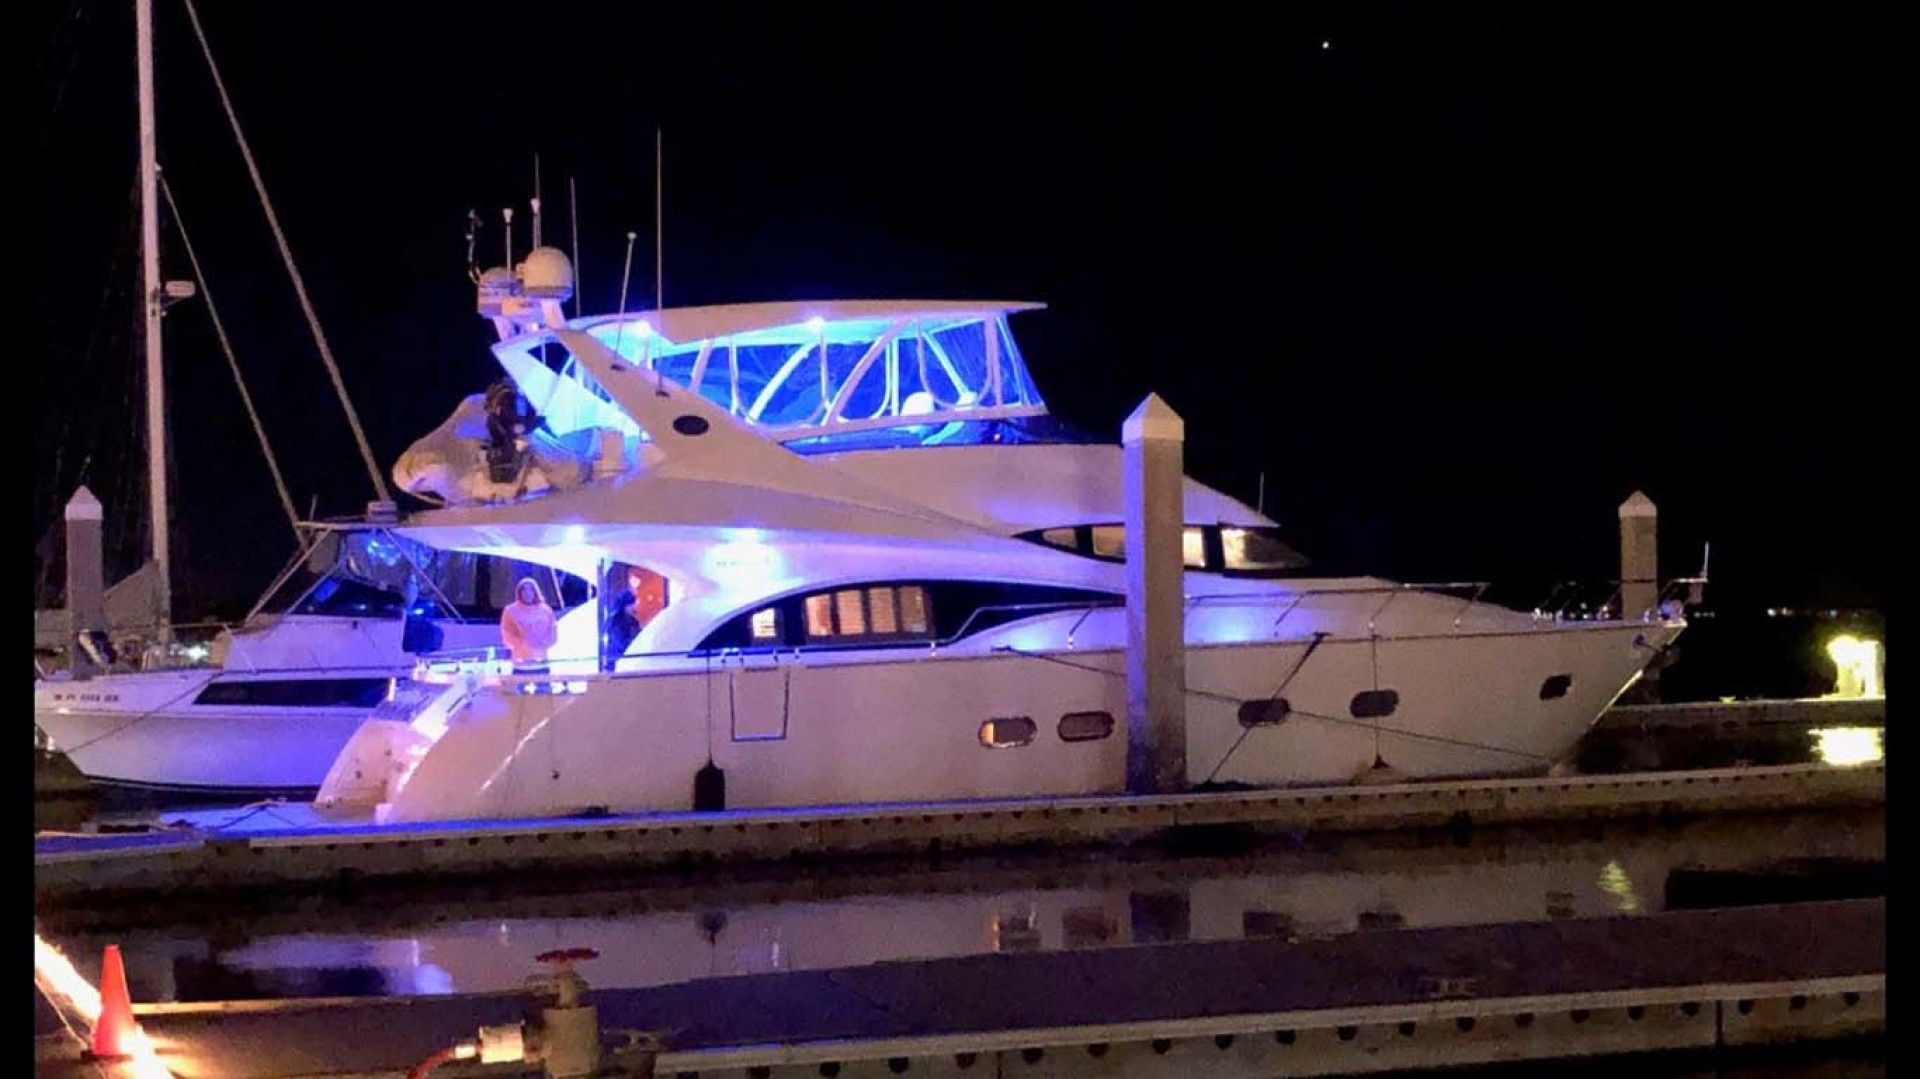 Marquis-Flybridge Motor Yacht 2004-Sandy Island Palm Coast-Florida-United States-Starboard View at Night-1202547 | Thumbnail